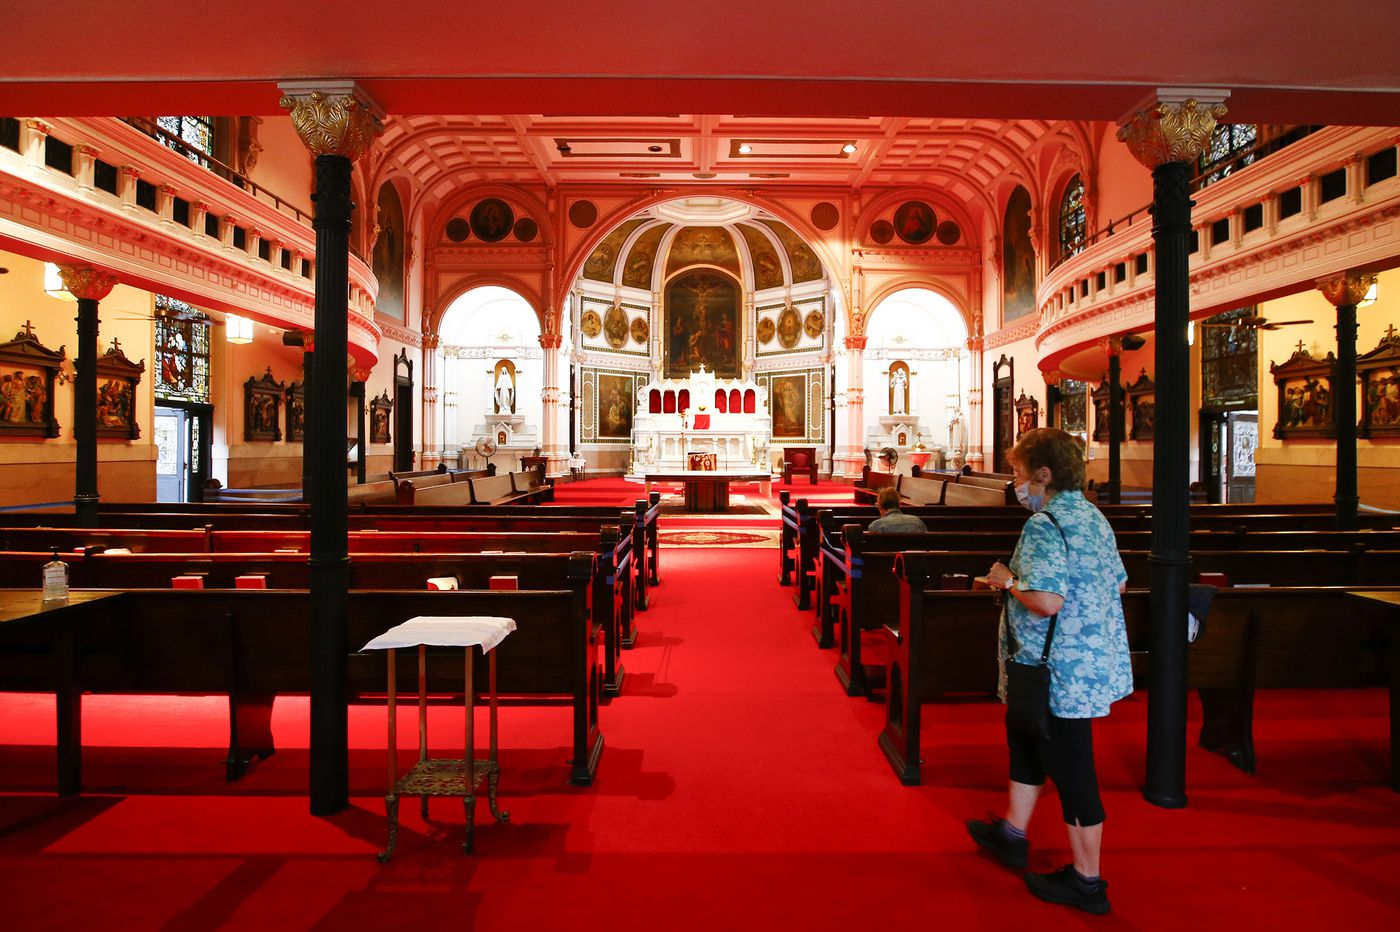 At Philly Catholic churches, secret renovations expose rift between traditional and Neo-Catechumenal members